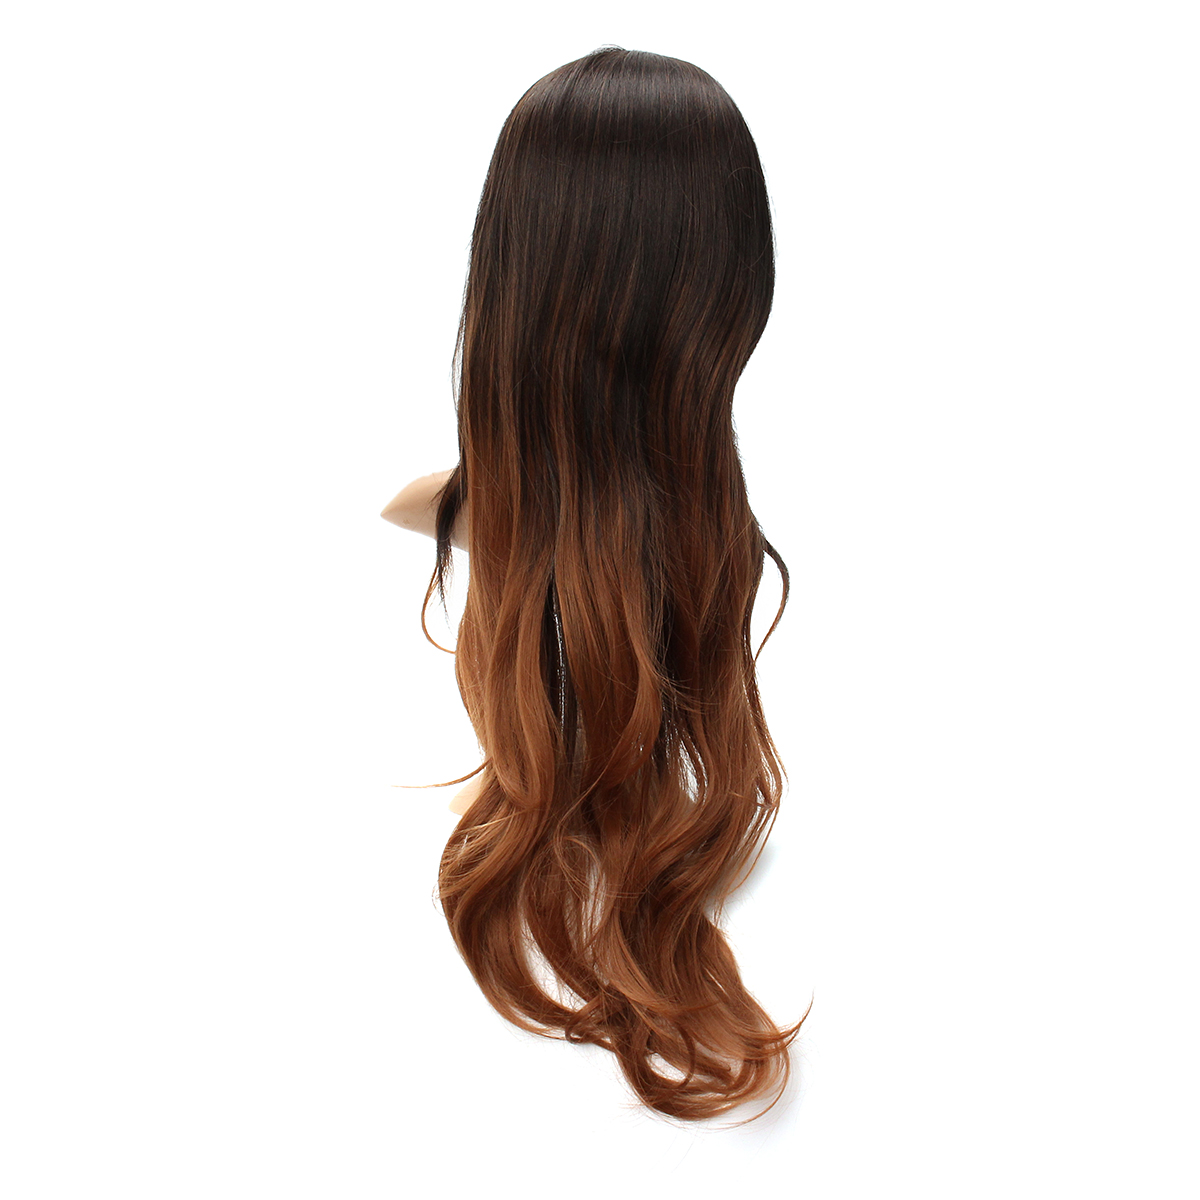 Women's Long Wavy Curly Hair Synthetic Wig Black Brown Ombre Cosplay Party Wig